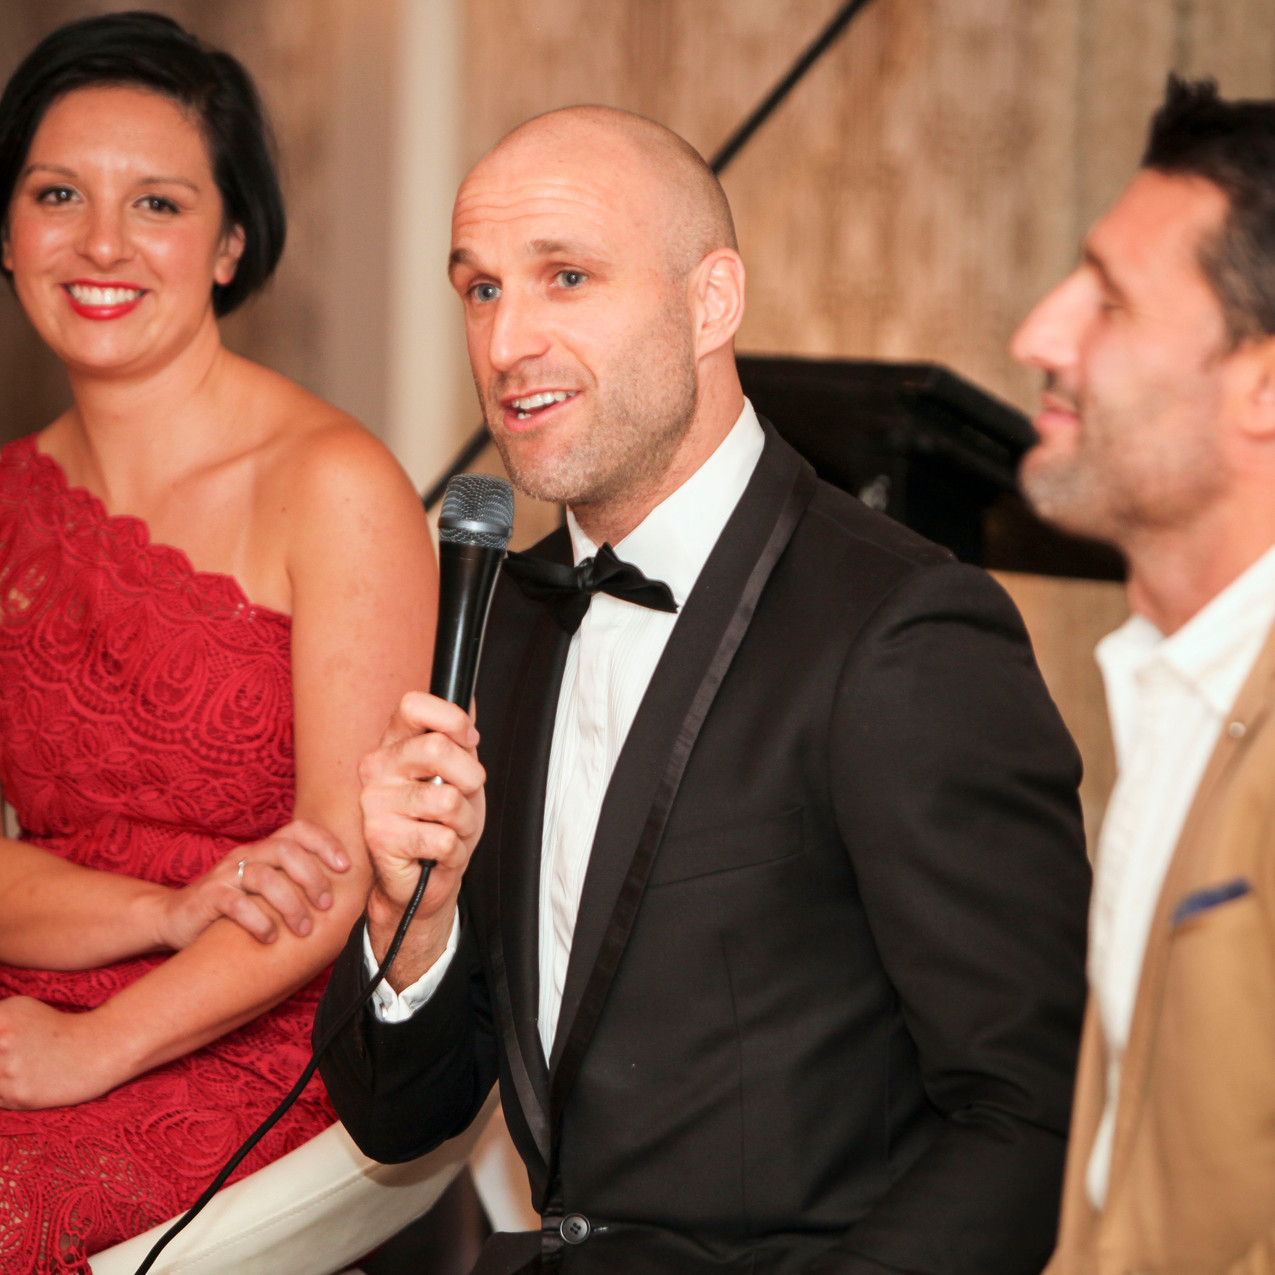 The AFL legend at a recent fundraising event, booked through PickStar.